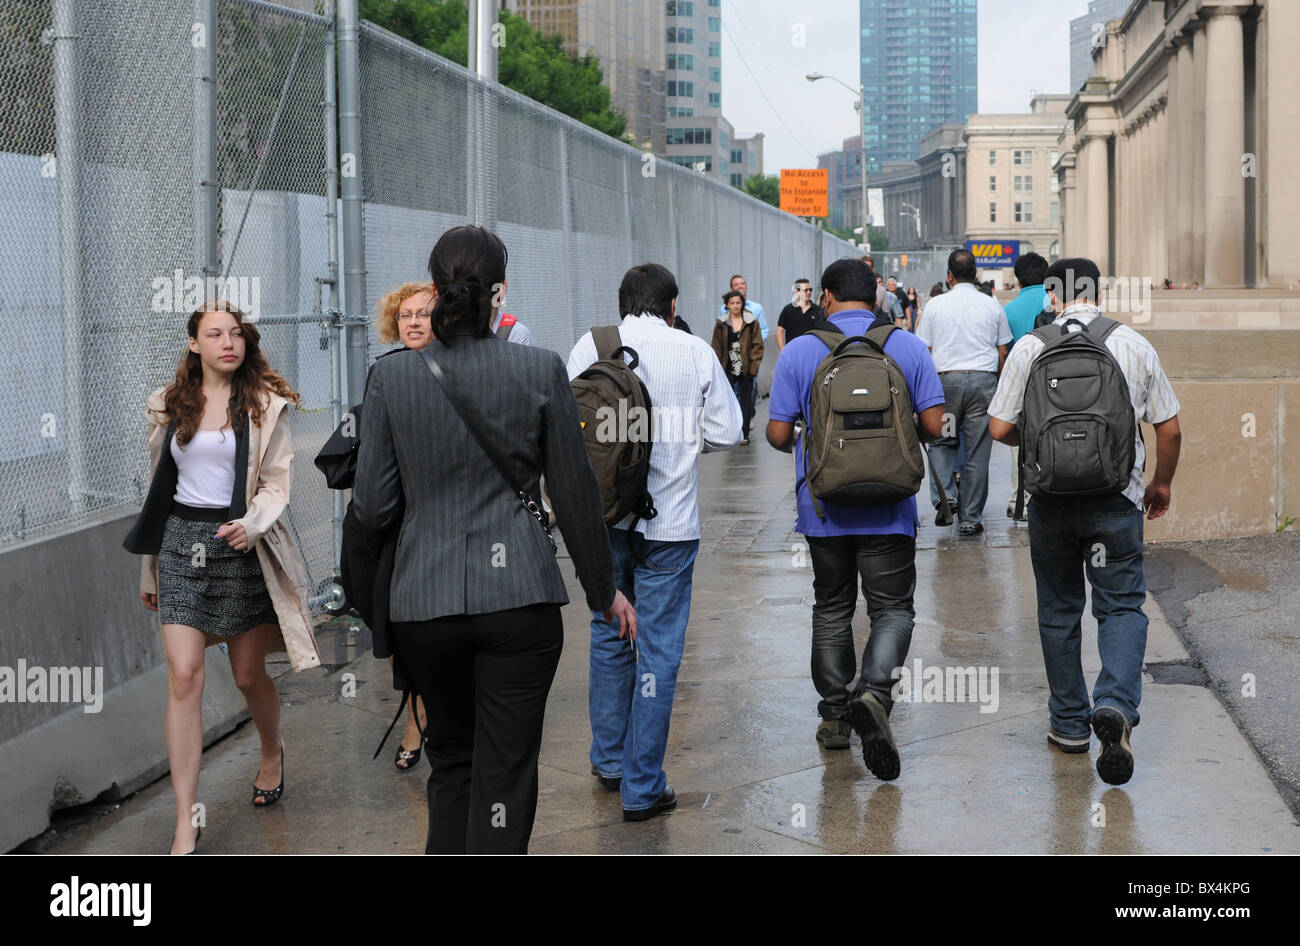 Security fencing erected in advance of the Toronto G20 Summit. - Stock Image